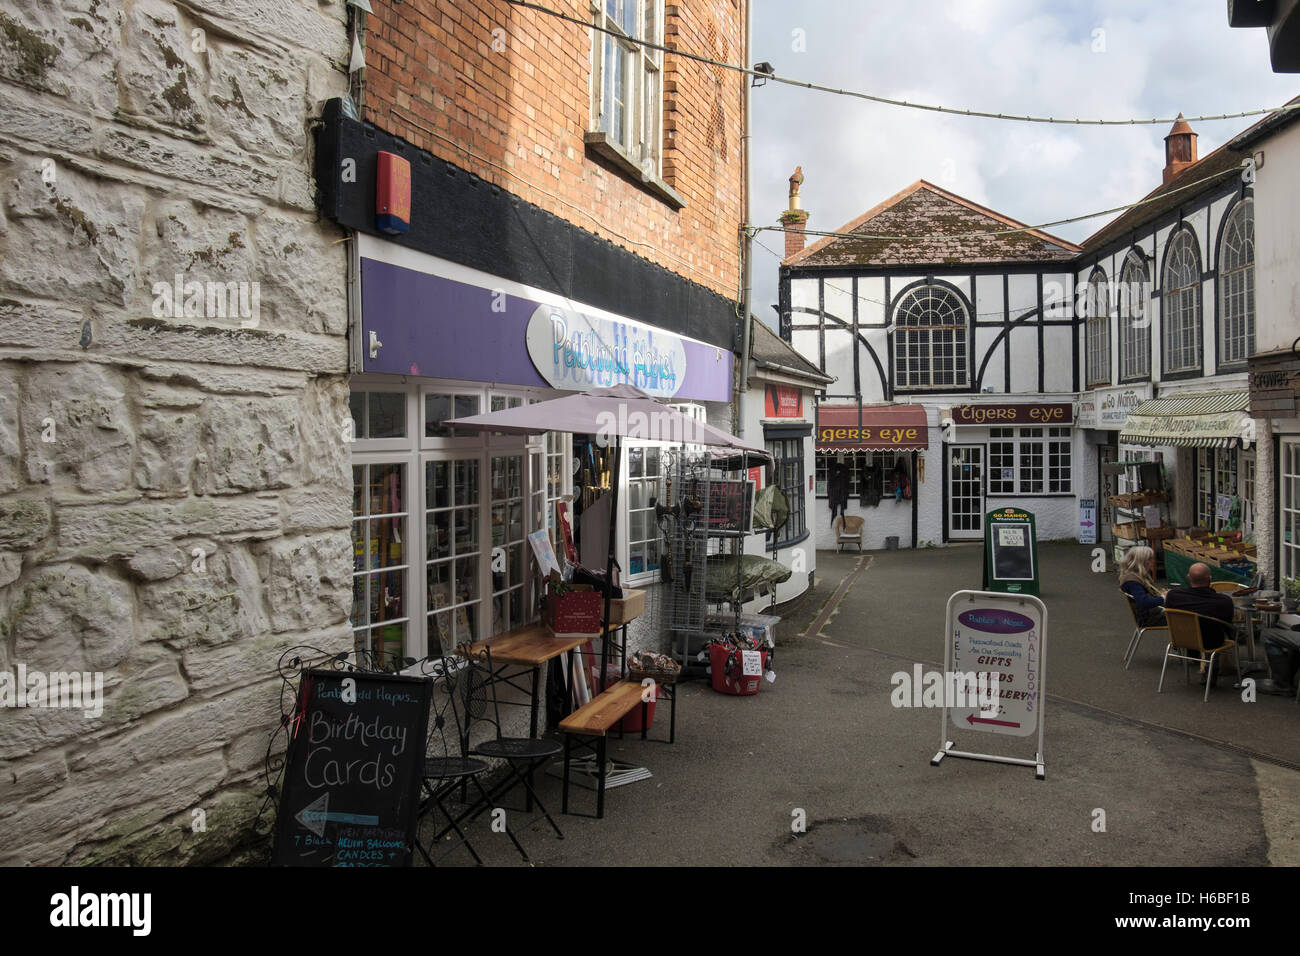 The Black Lion Mews arcade of small shops in town centre. Cardigan (Aberteifi), Ceredigion, Wales, UK, Britain - Stock Image